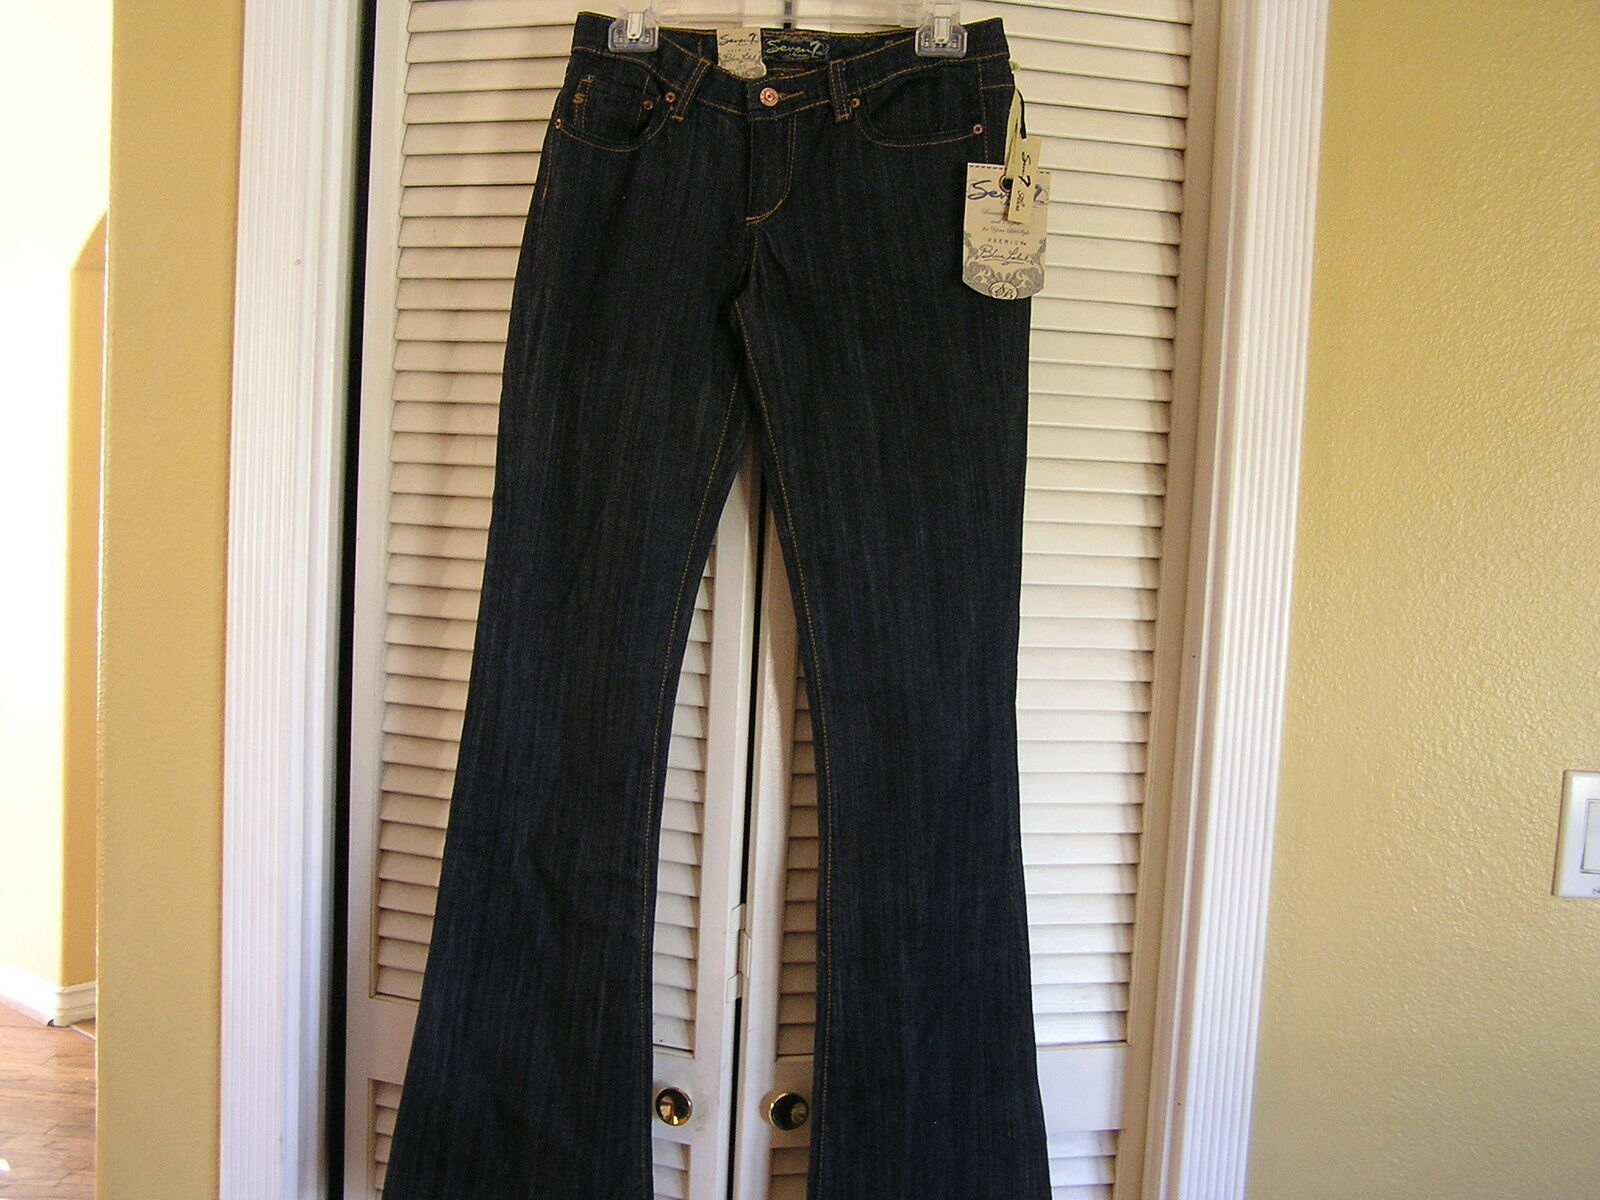 Seven 7 For All Mankind bluee Label Flare Jeans Woman's 28 Dark Wash Stretch NWT